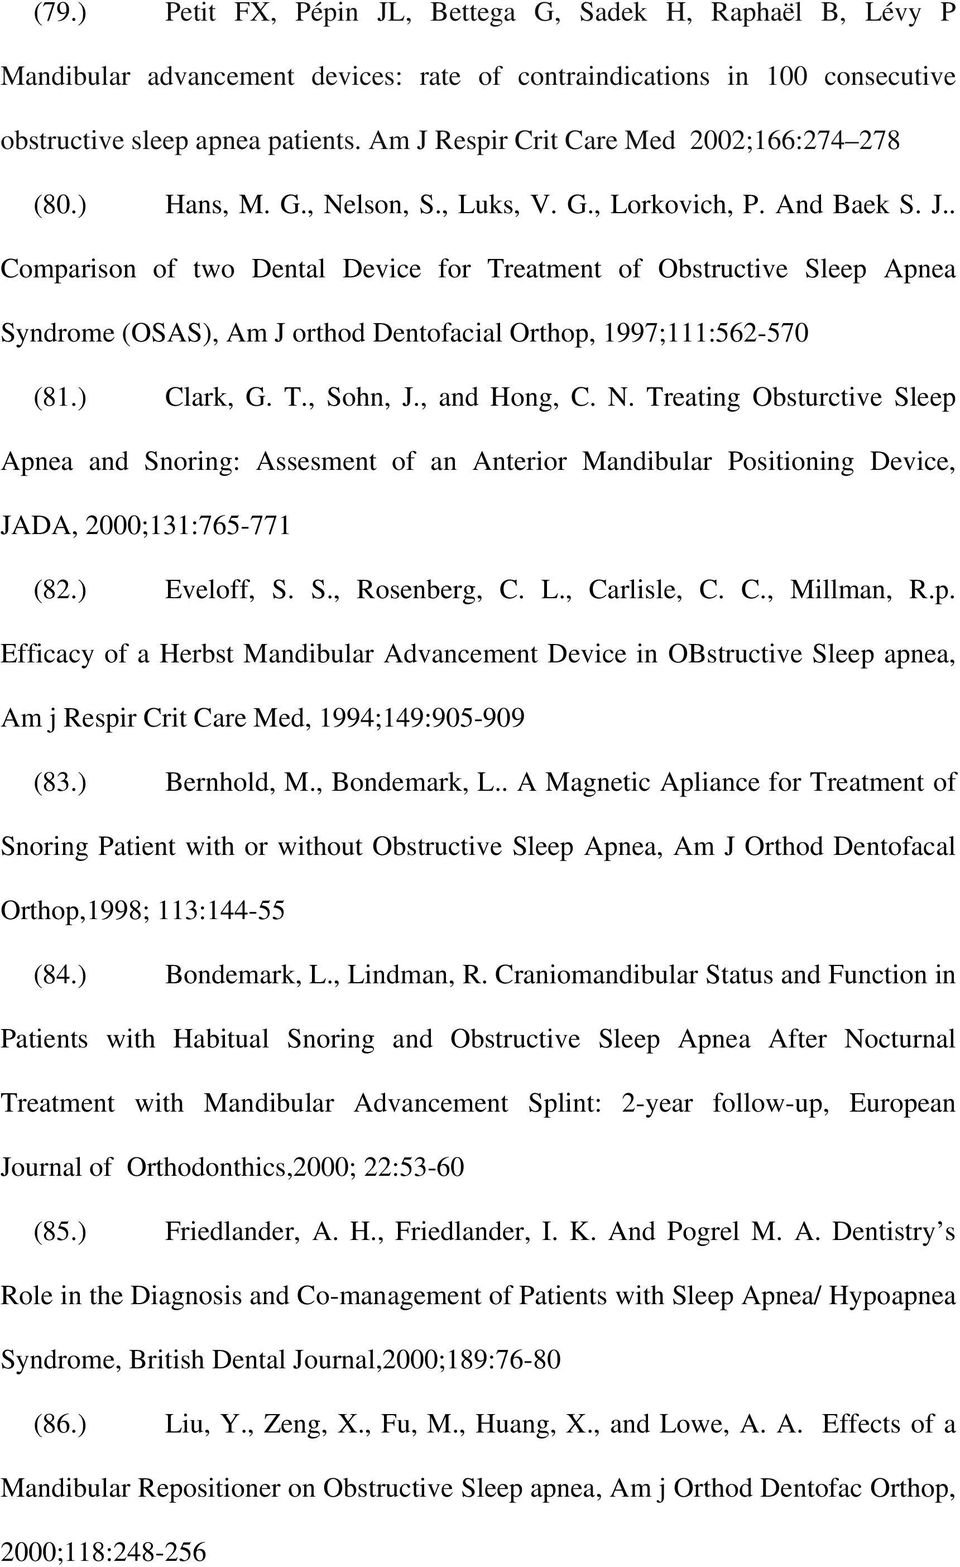 ) Clark, G. T., Sohn, J., and Hong, C. N. Treating Obsturctive Sleep Apnea and Snoring: Assesment of an Anterior Mandibular Positioning Device, JADA, 2000;131:765-771 (82.) Eveloff, S. S., Rosenberg, C.